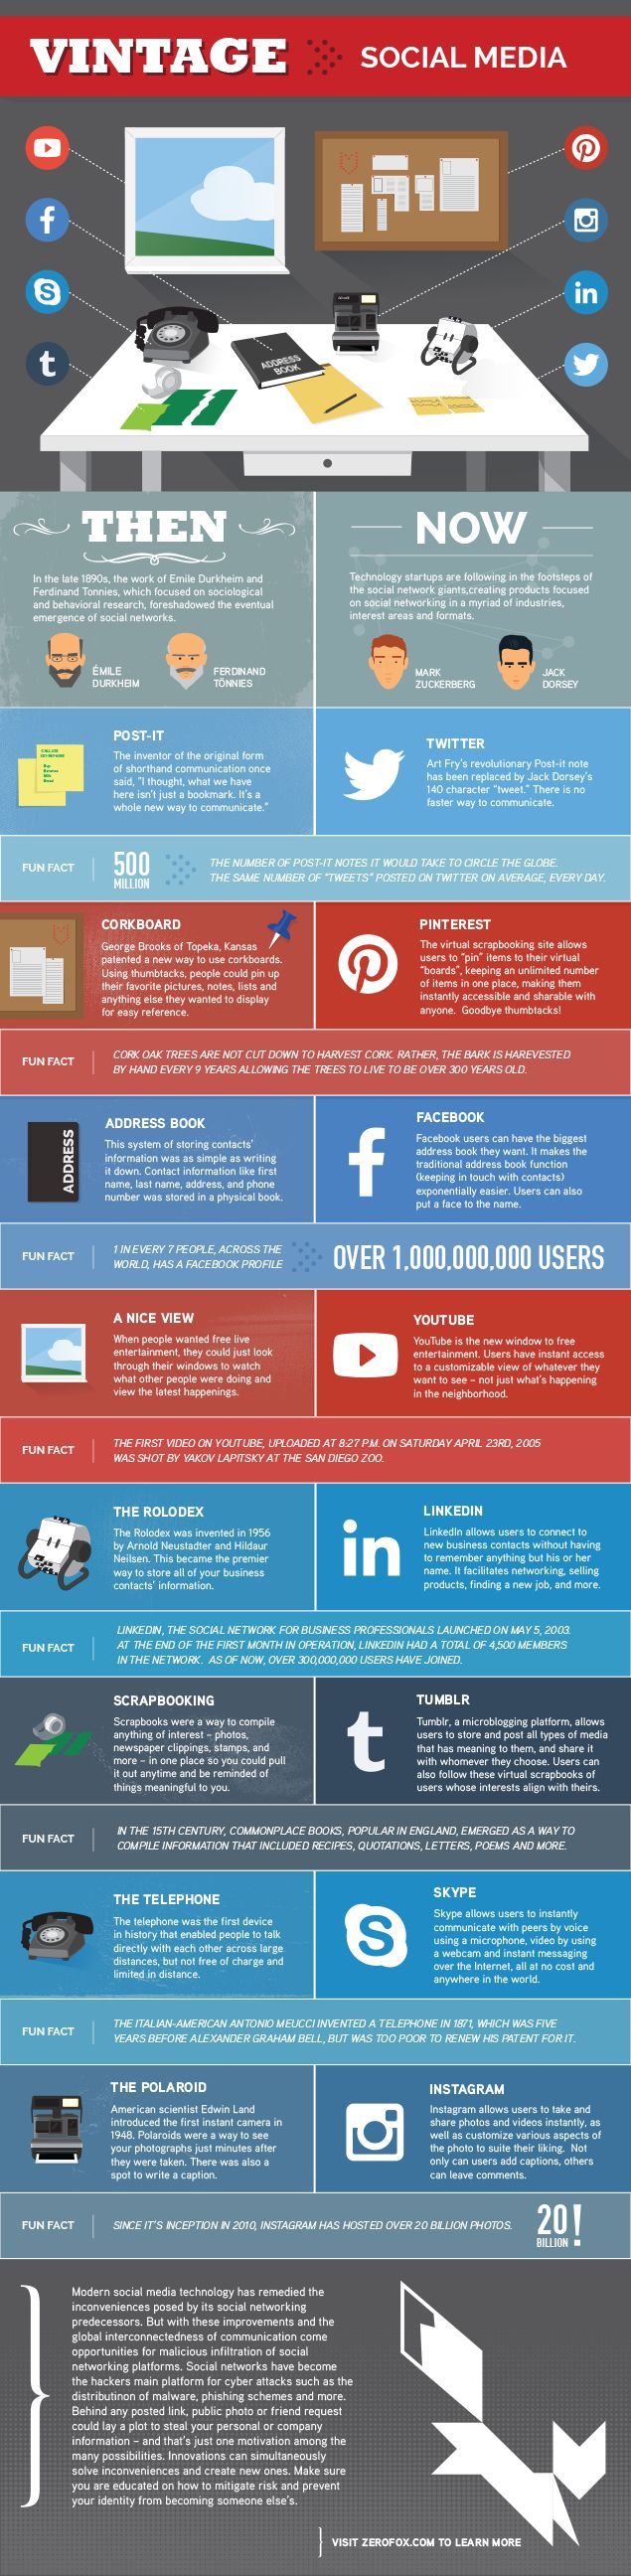 Vintage Social Media - Twitter, Pinterest, Facebook, YouTube, LinkedIn Instagram Then And Now #infographic